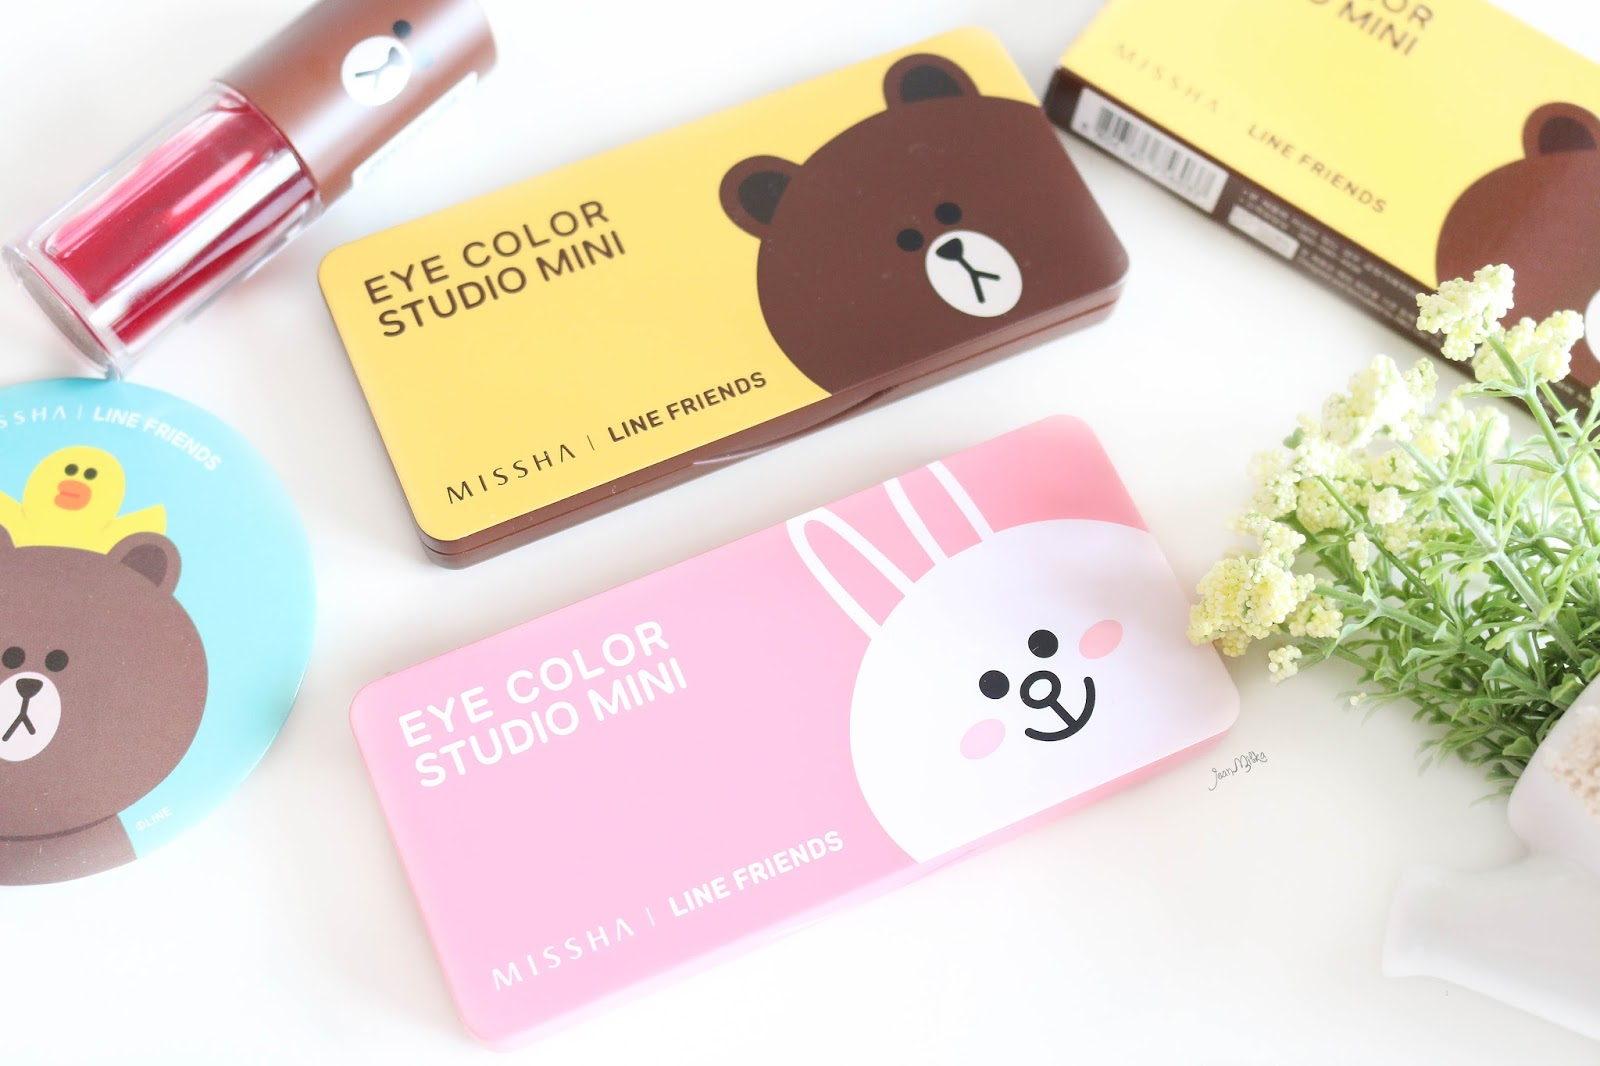 missha, line, misshaxline, missha x line, line friends, line brown, line cony, brown browny eyeshadow, cony pink eyeshadow, review, swatch, line friends